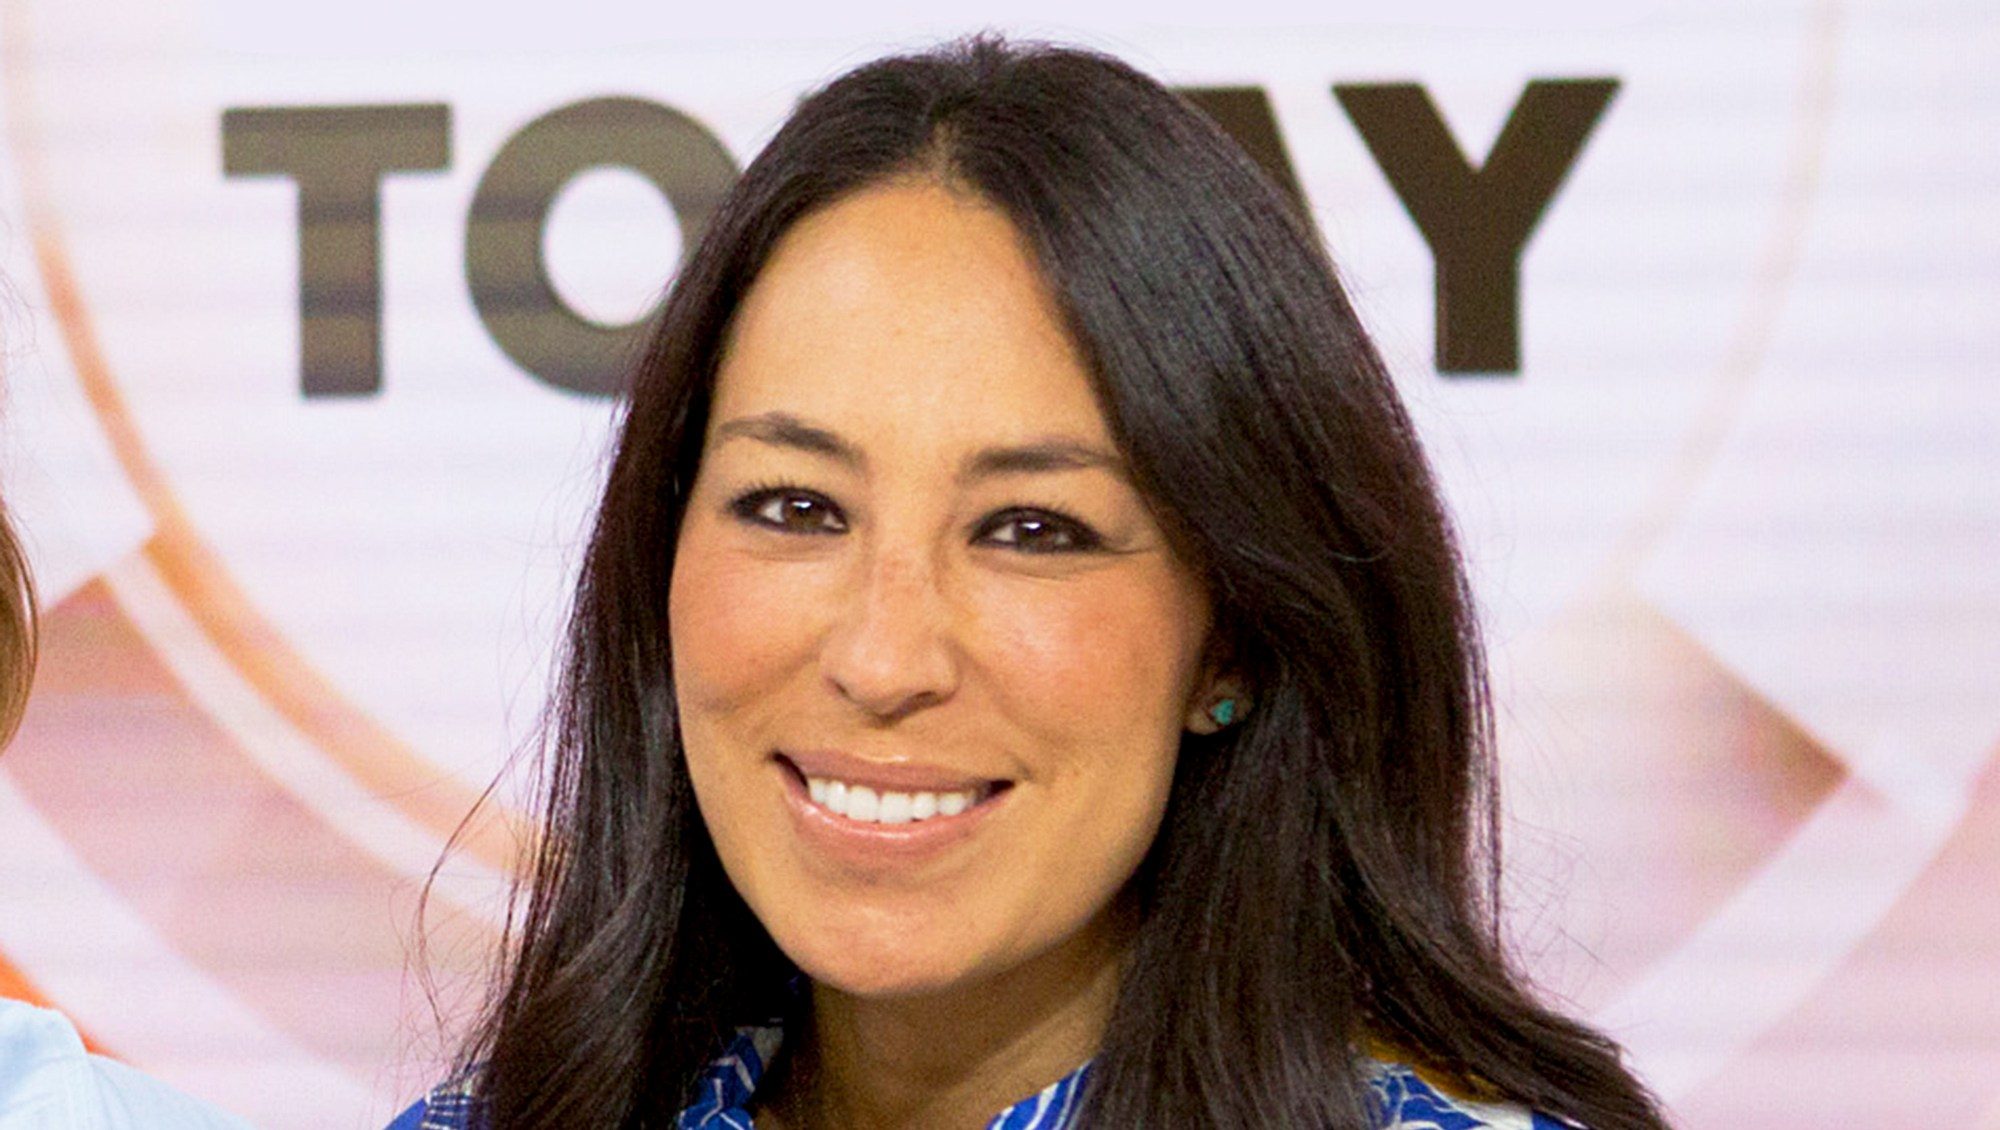 Joanna Gaines on 'Today' show